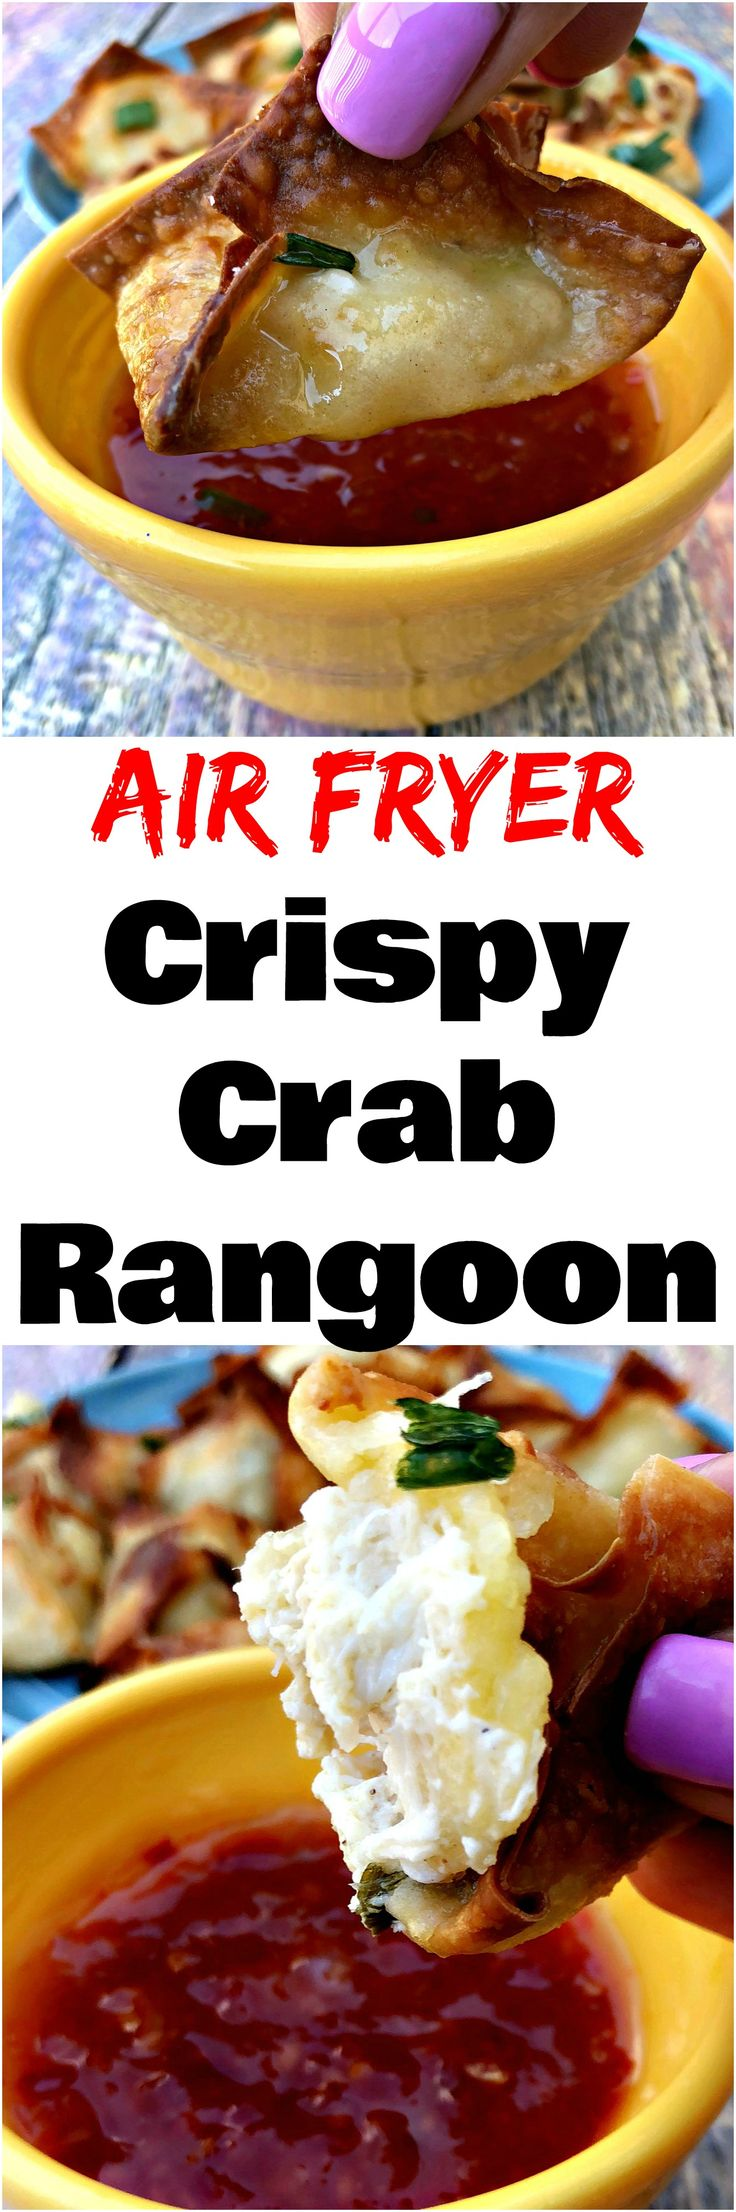 Air Fryer Crispy Crab Rangoon is a quick and easy, healthy air-fried recipe using wonton wrappers, reduced-fat cream cheese, and jumbo lump crab meat. This crab rangoon is crunchy and filled with flavor. #AirFryer #AirFryerRecipes #HealthyRecipes